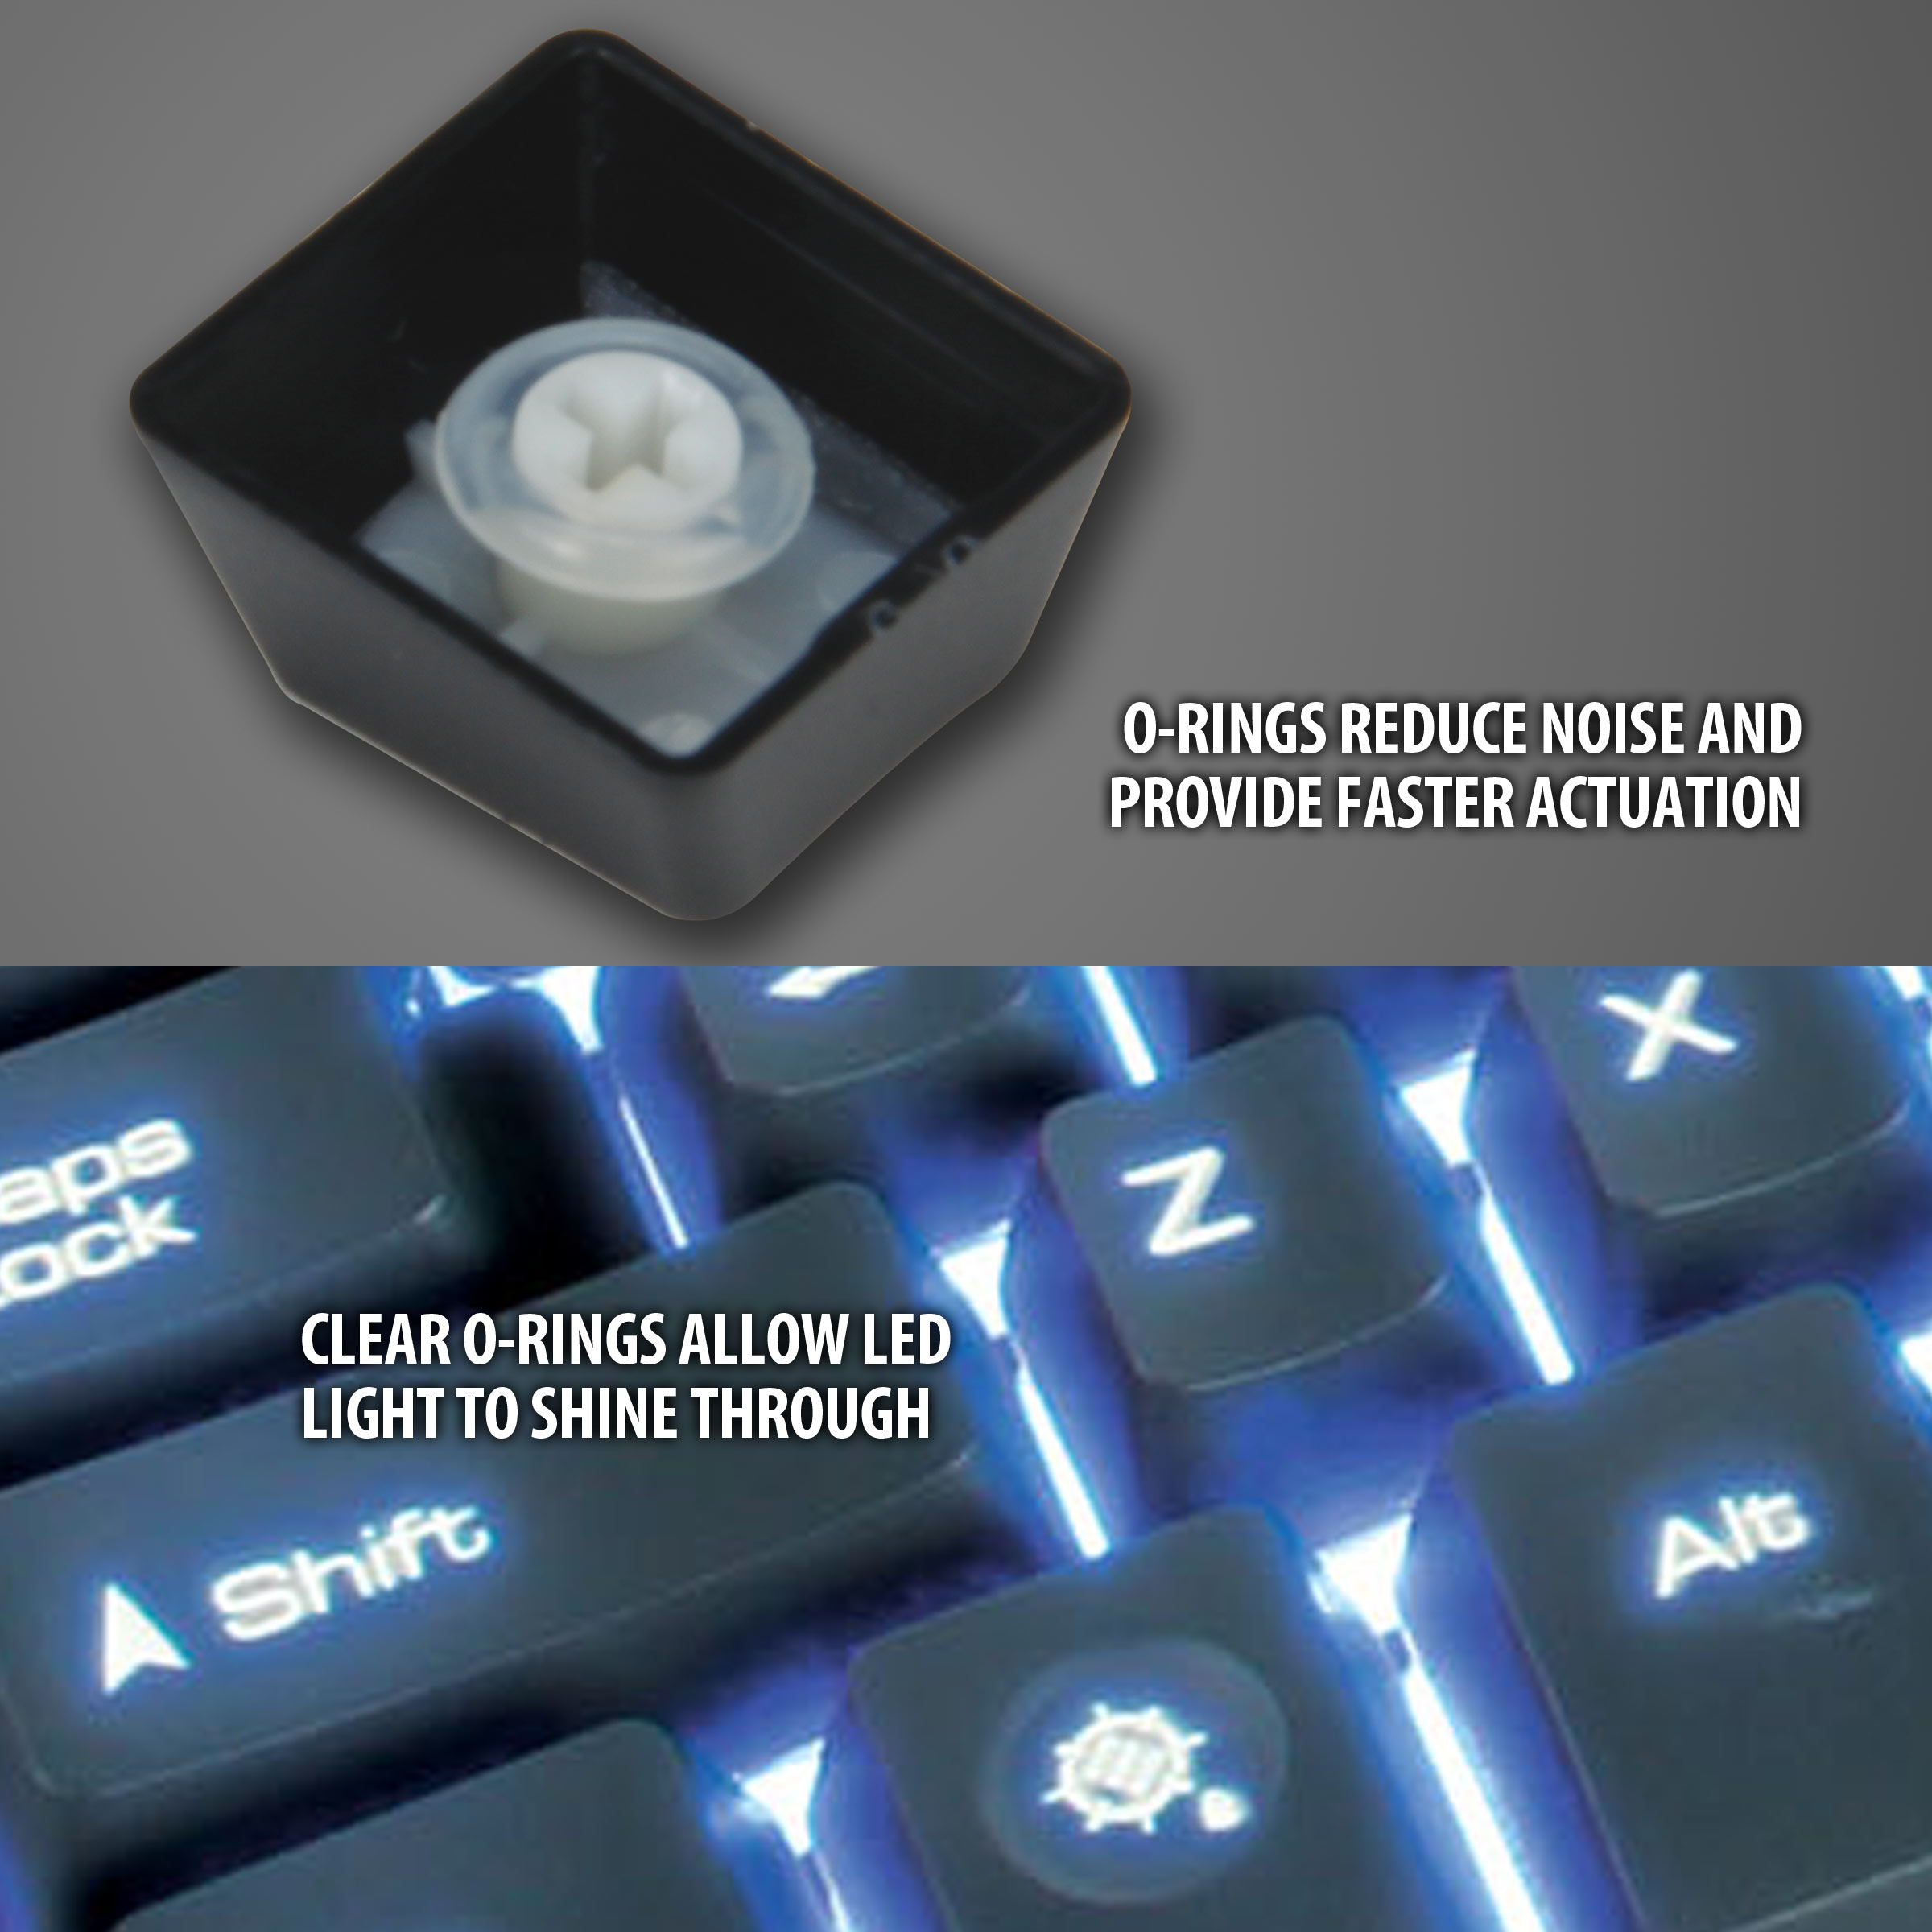 Details about Mechanical Keyboard Modification Kit w/ O-Ring Switch  Dampeners & Keycap Puller